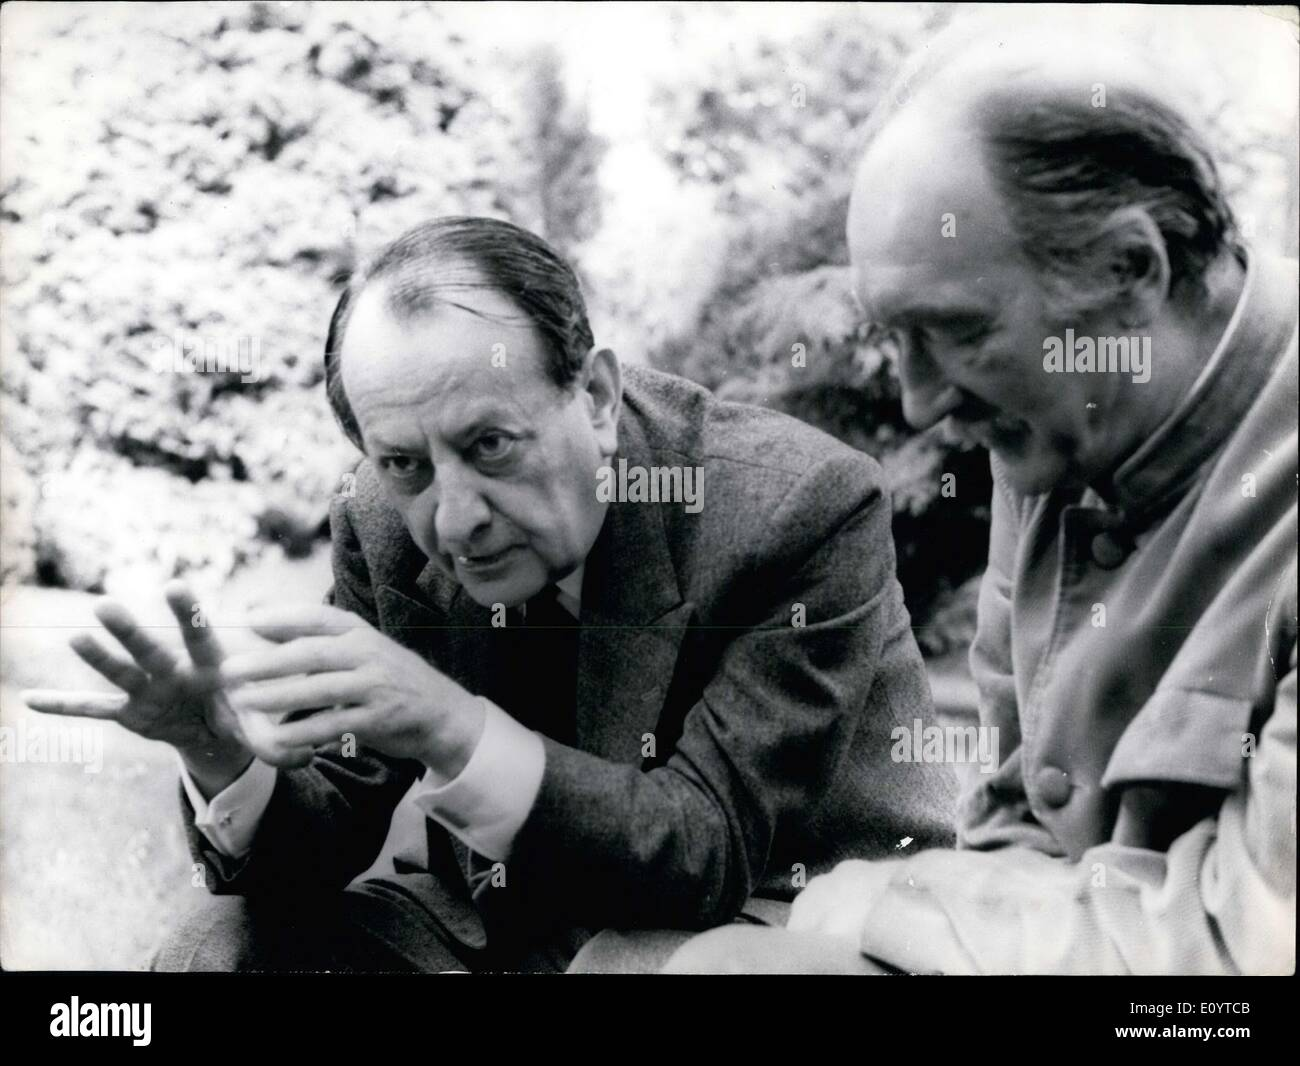 May 15, 1971 - Andre Malraux and Jean Vilar Filming - Stock Image